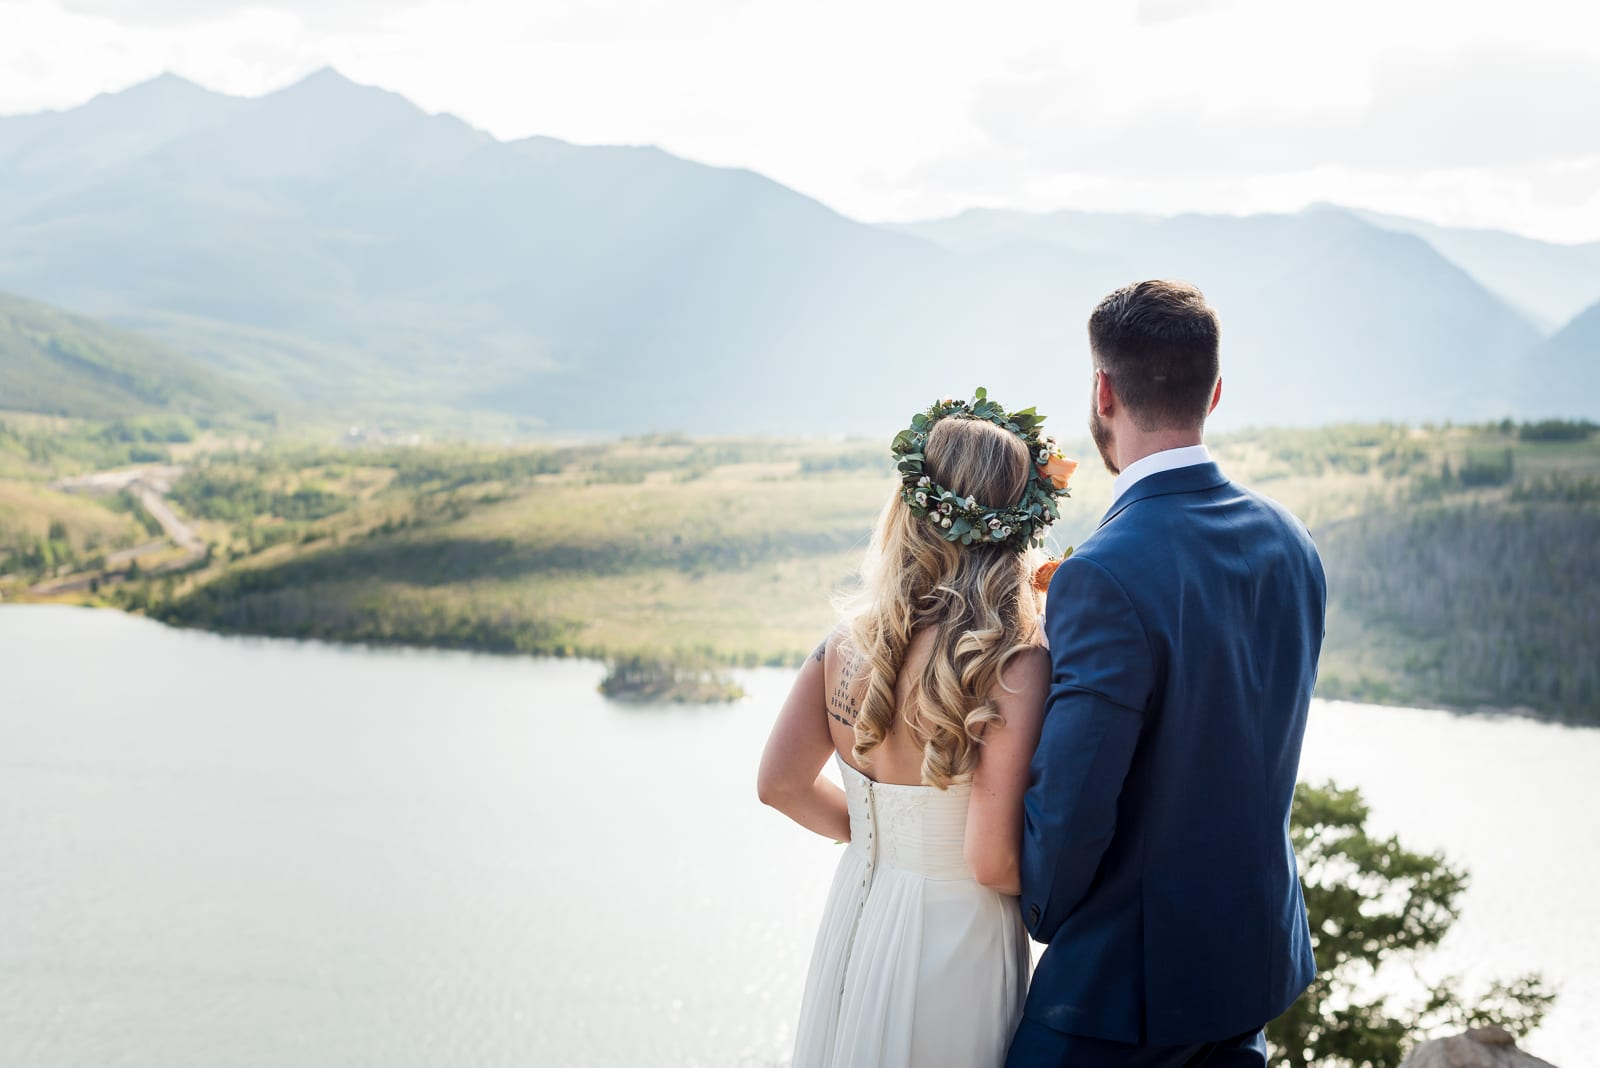 Second Wedding | Wedding Photography | Sapphire Point Overlook | From the Hip Photo